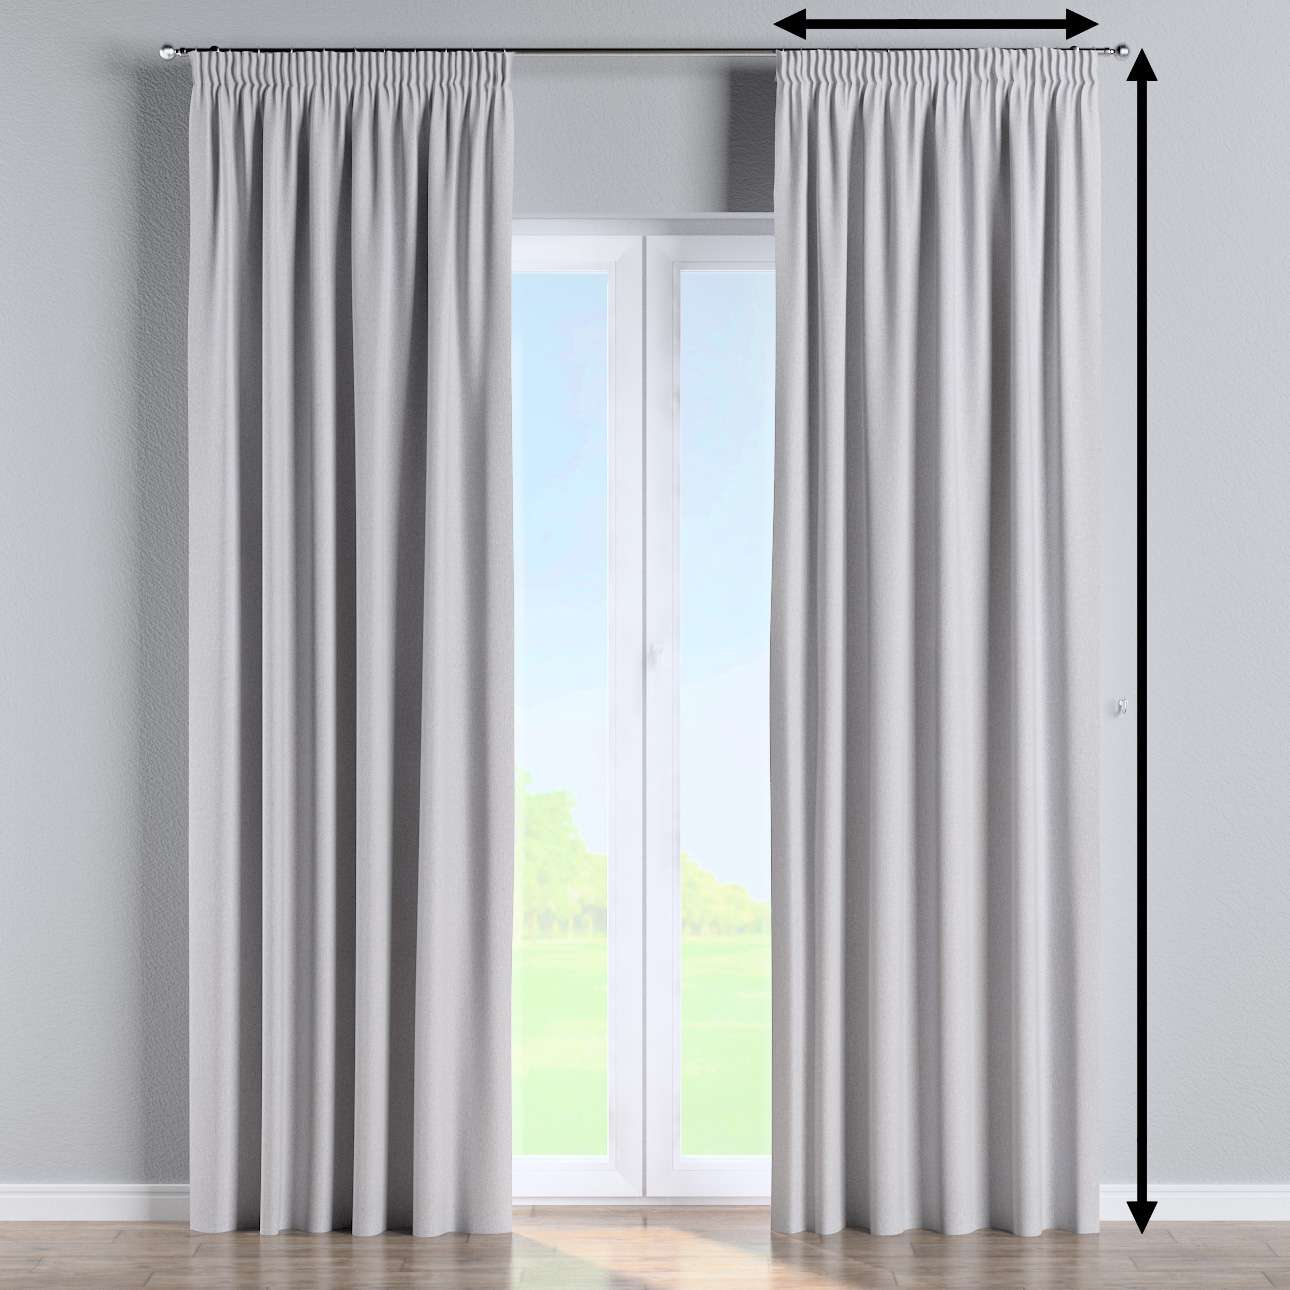 Pencil pleat curtain in collection Amsterdam, fabric: 704-45